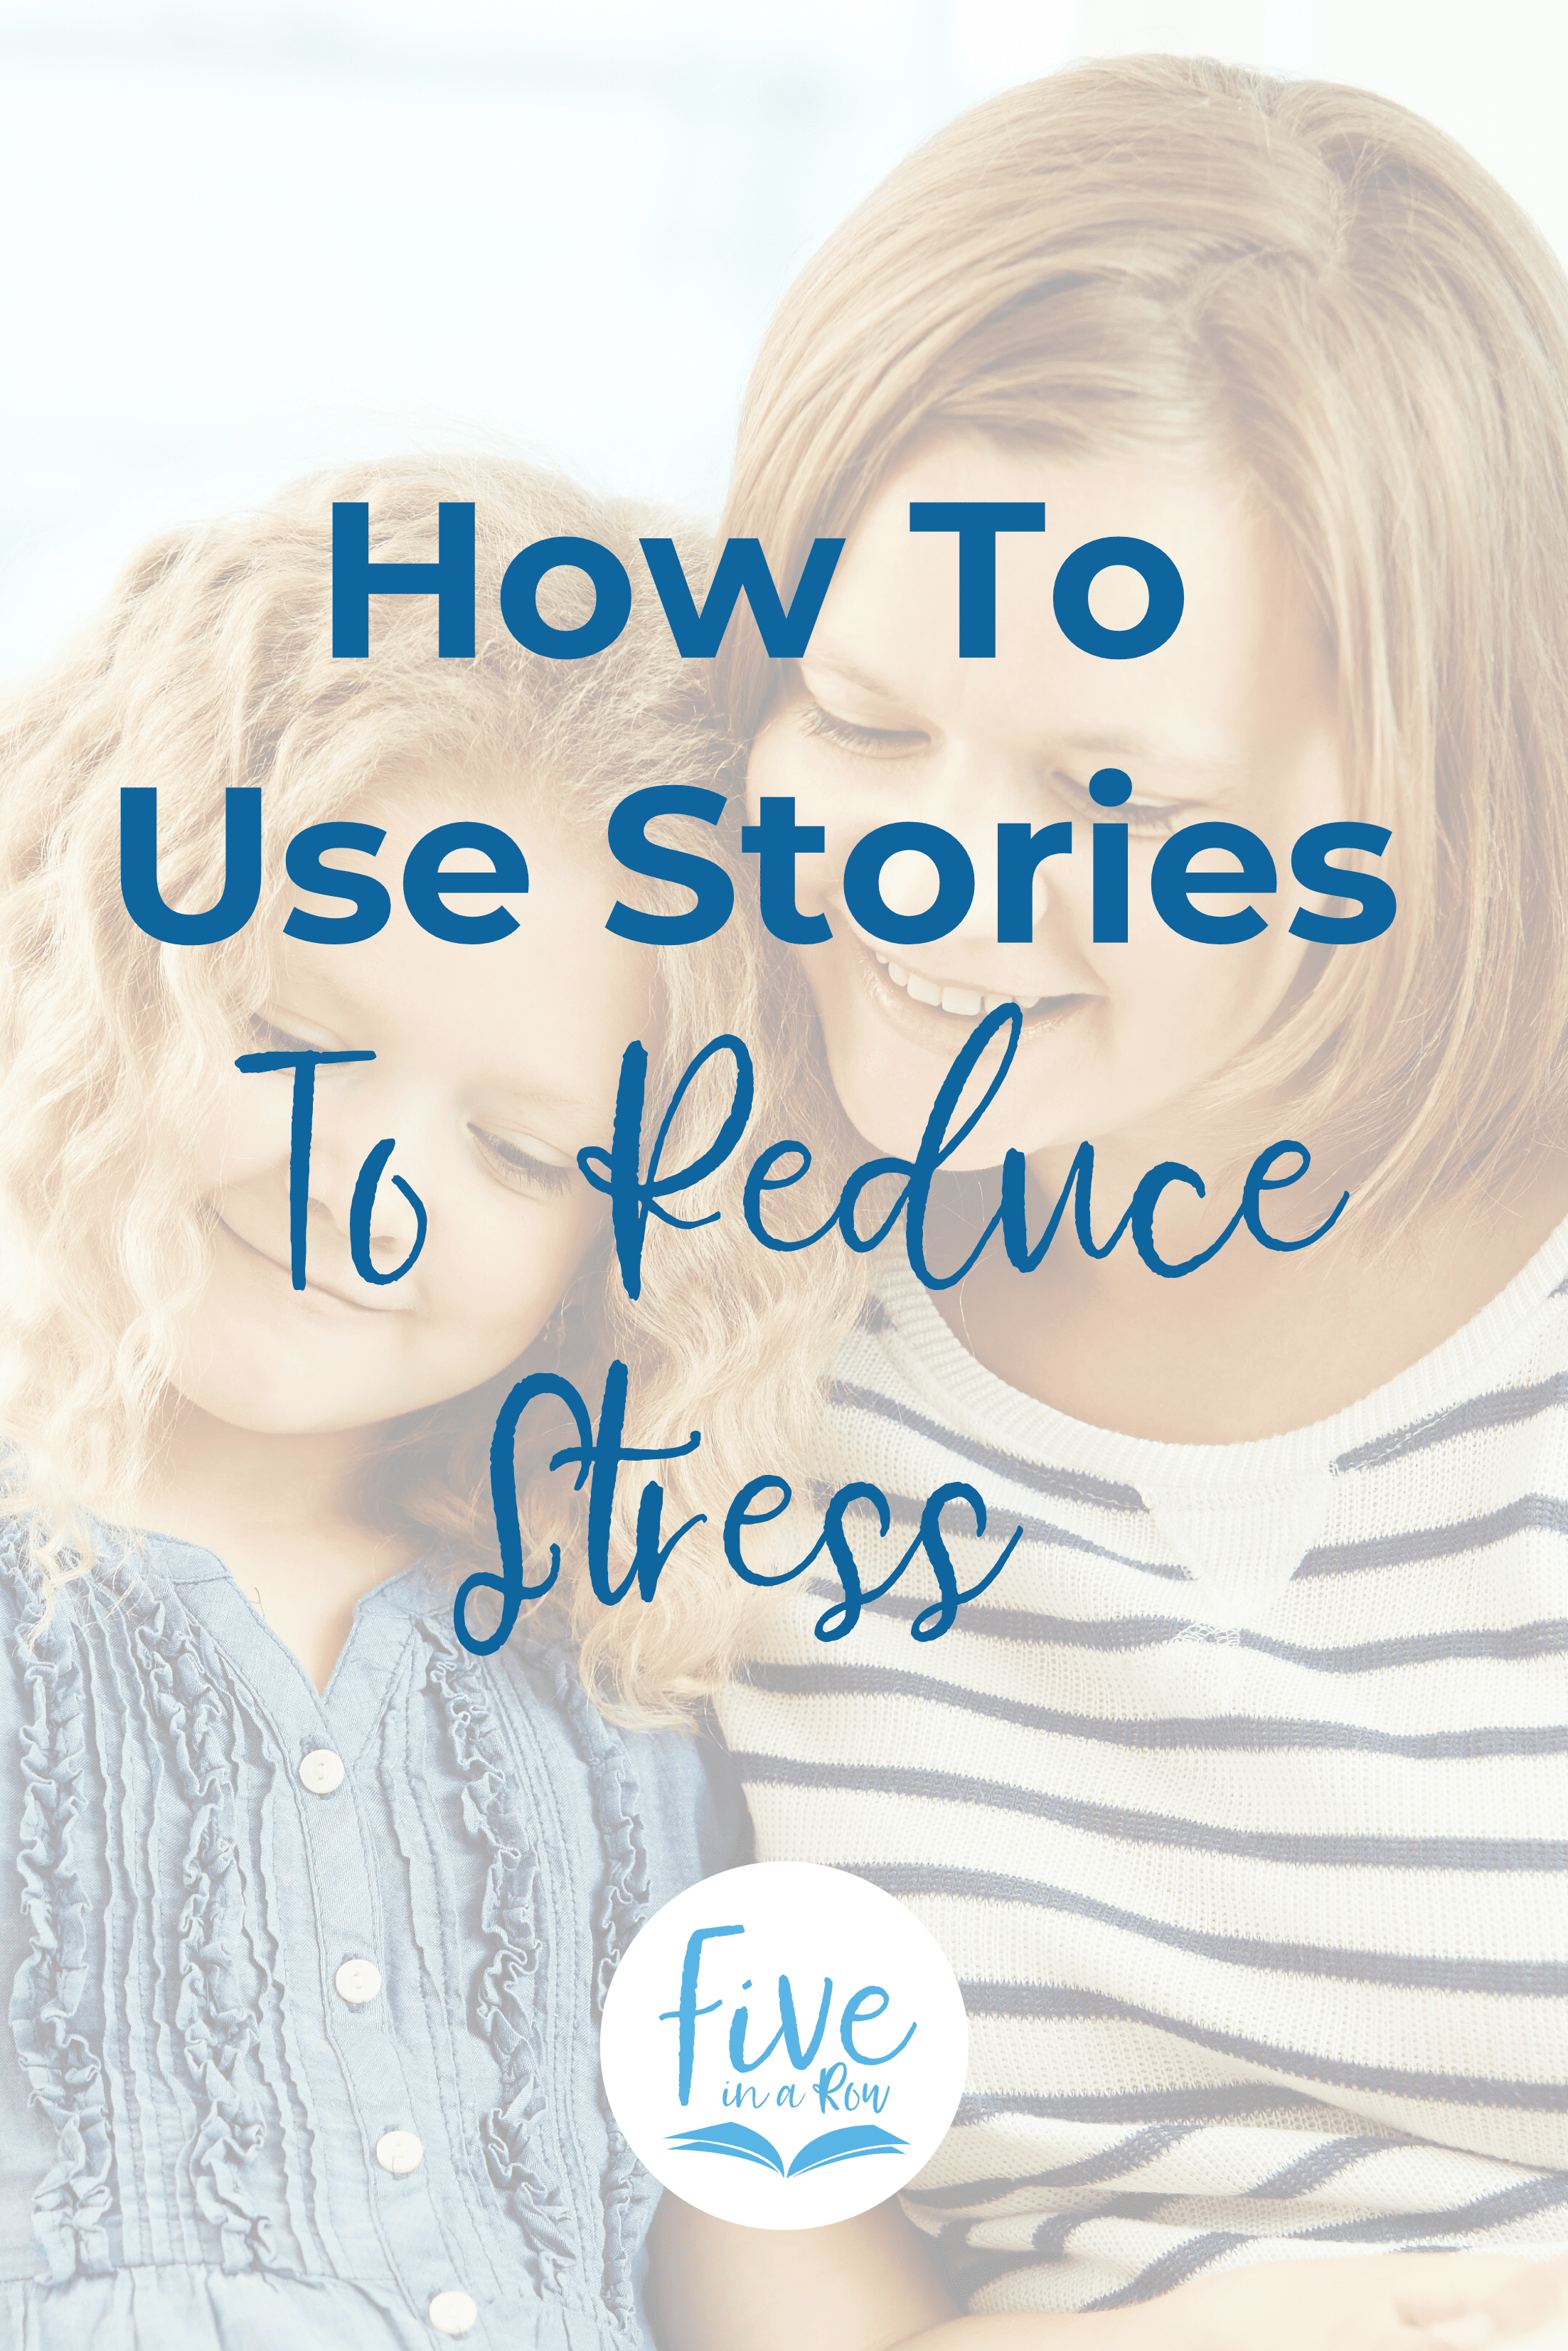 We all have felt the effects of the recent pandemic and the quarantine our families have been under. Today I want to talk about how we can use stories to reduce stress both for ourselves and especially for our children, during this uncertain time!